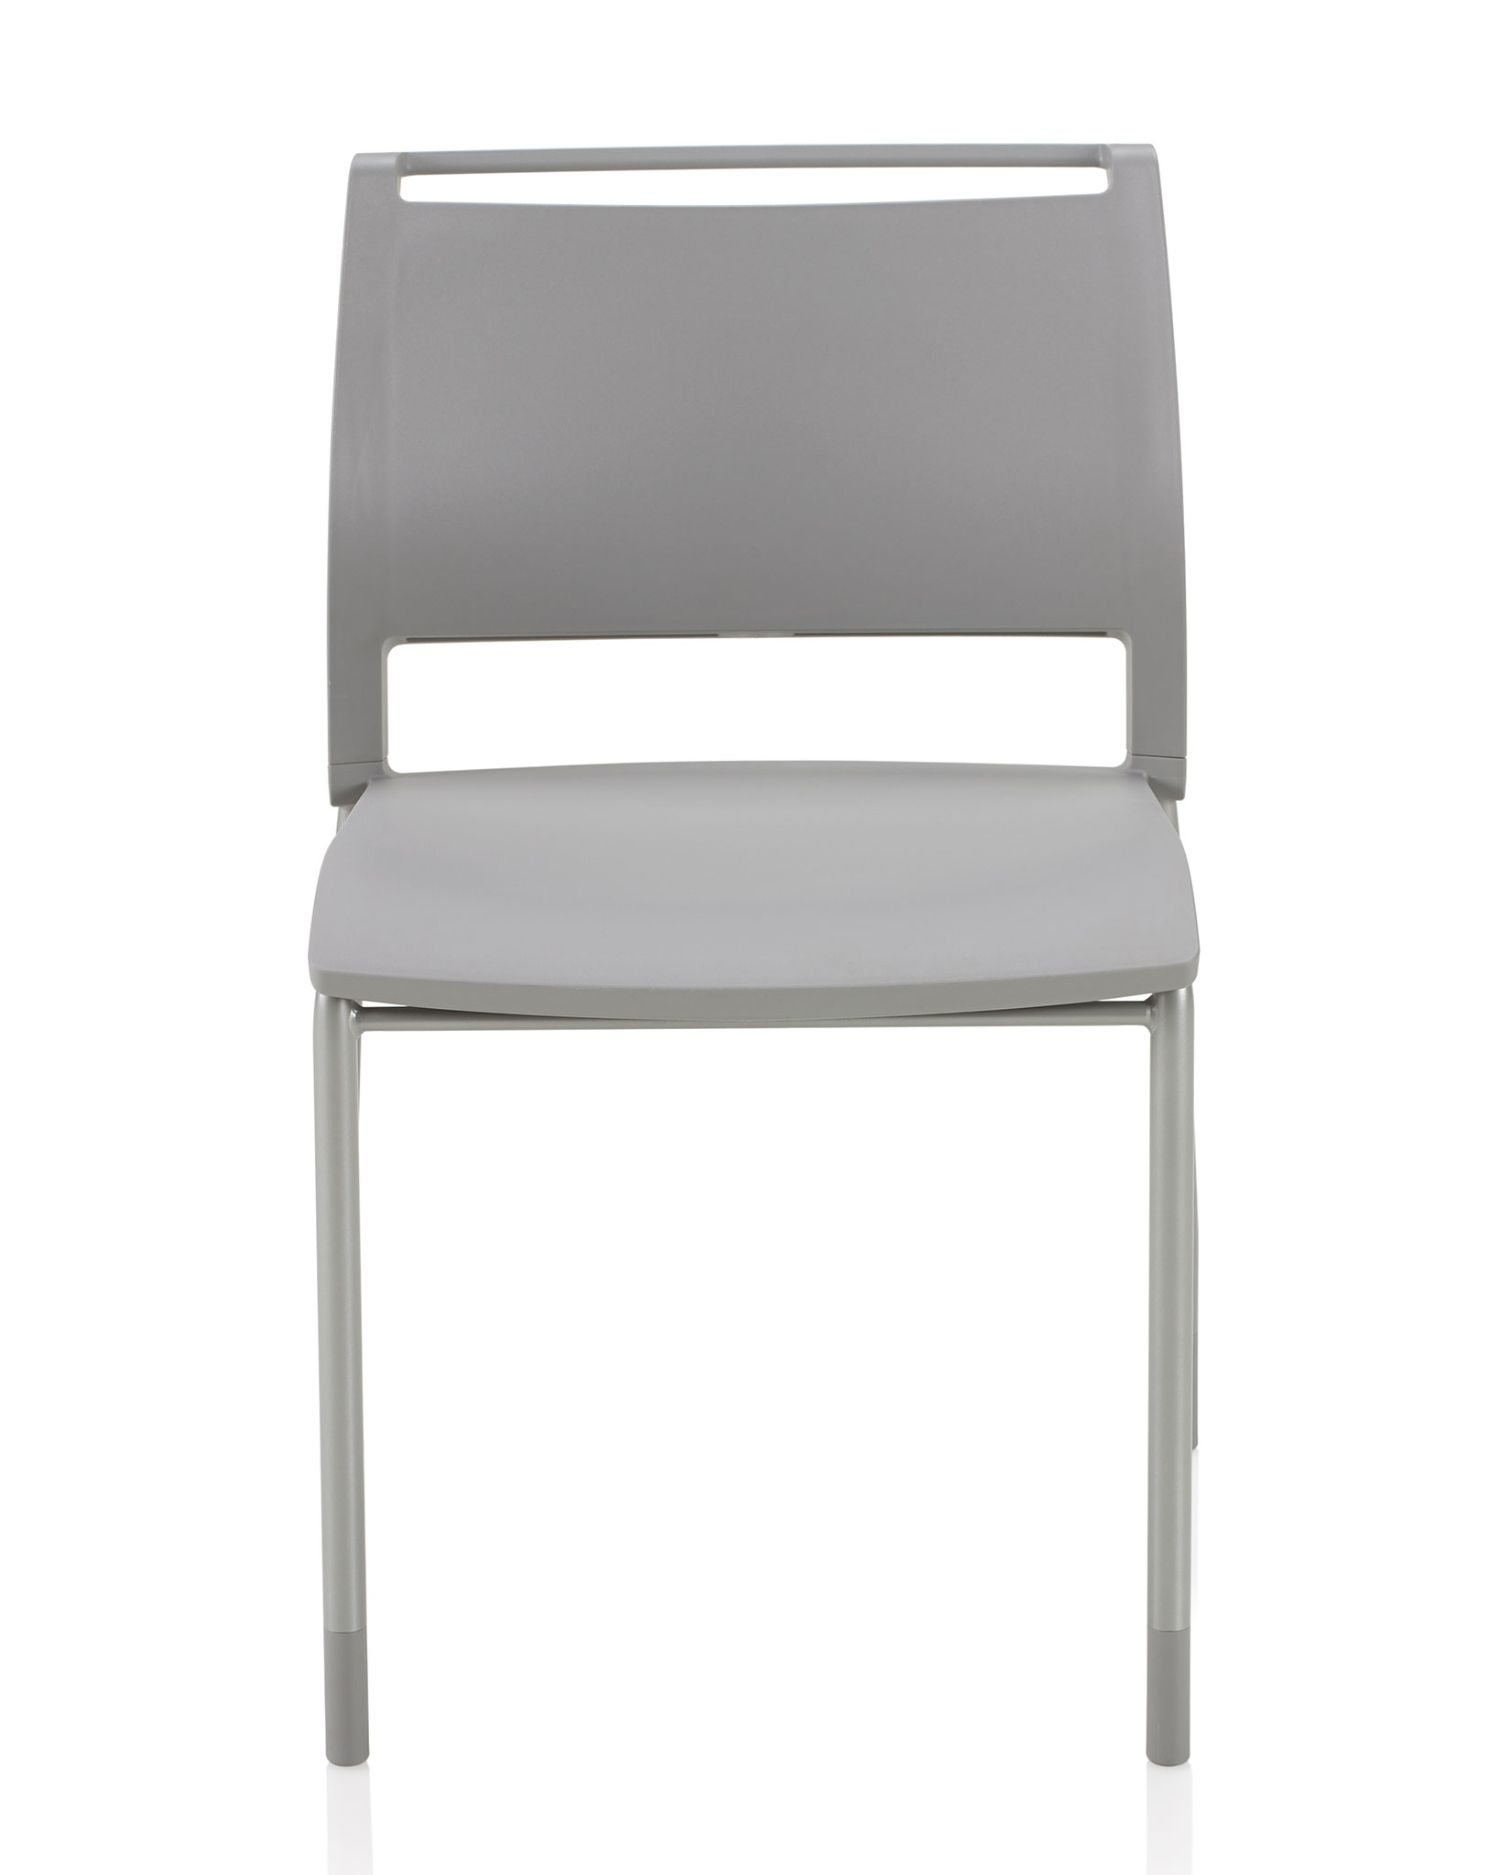 opt4 stacking chair front